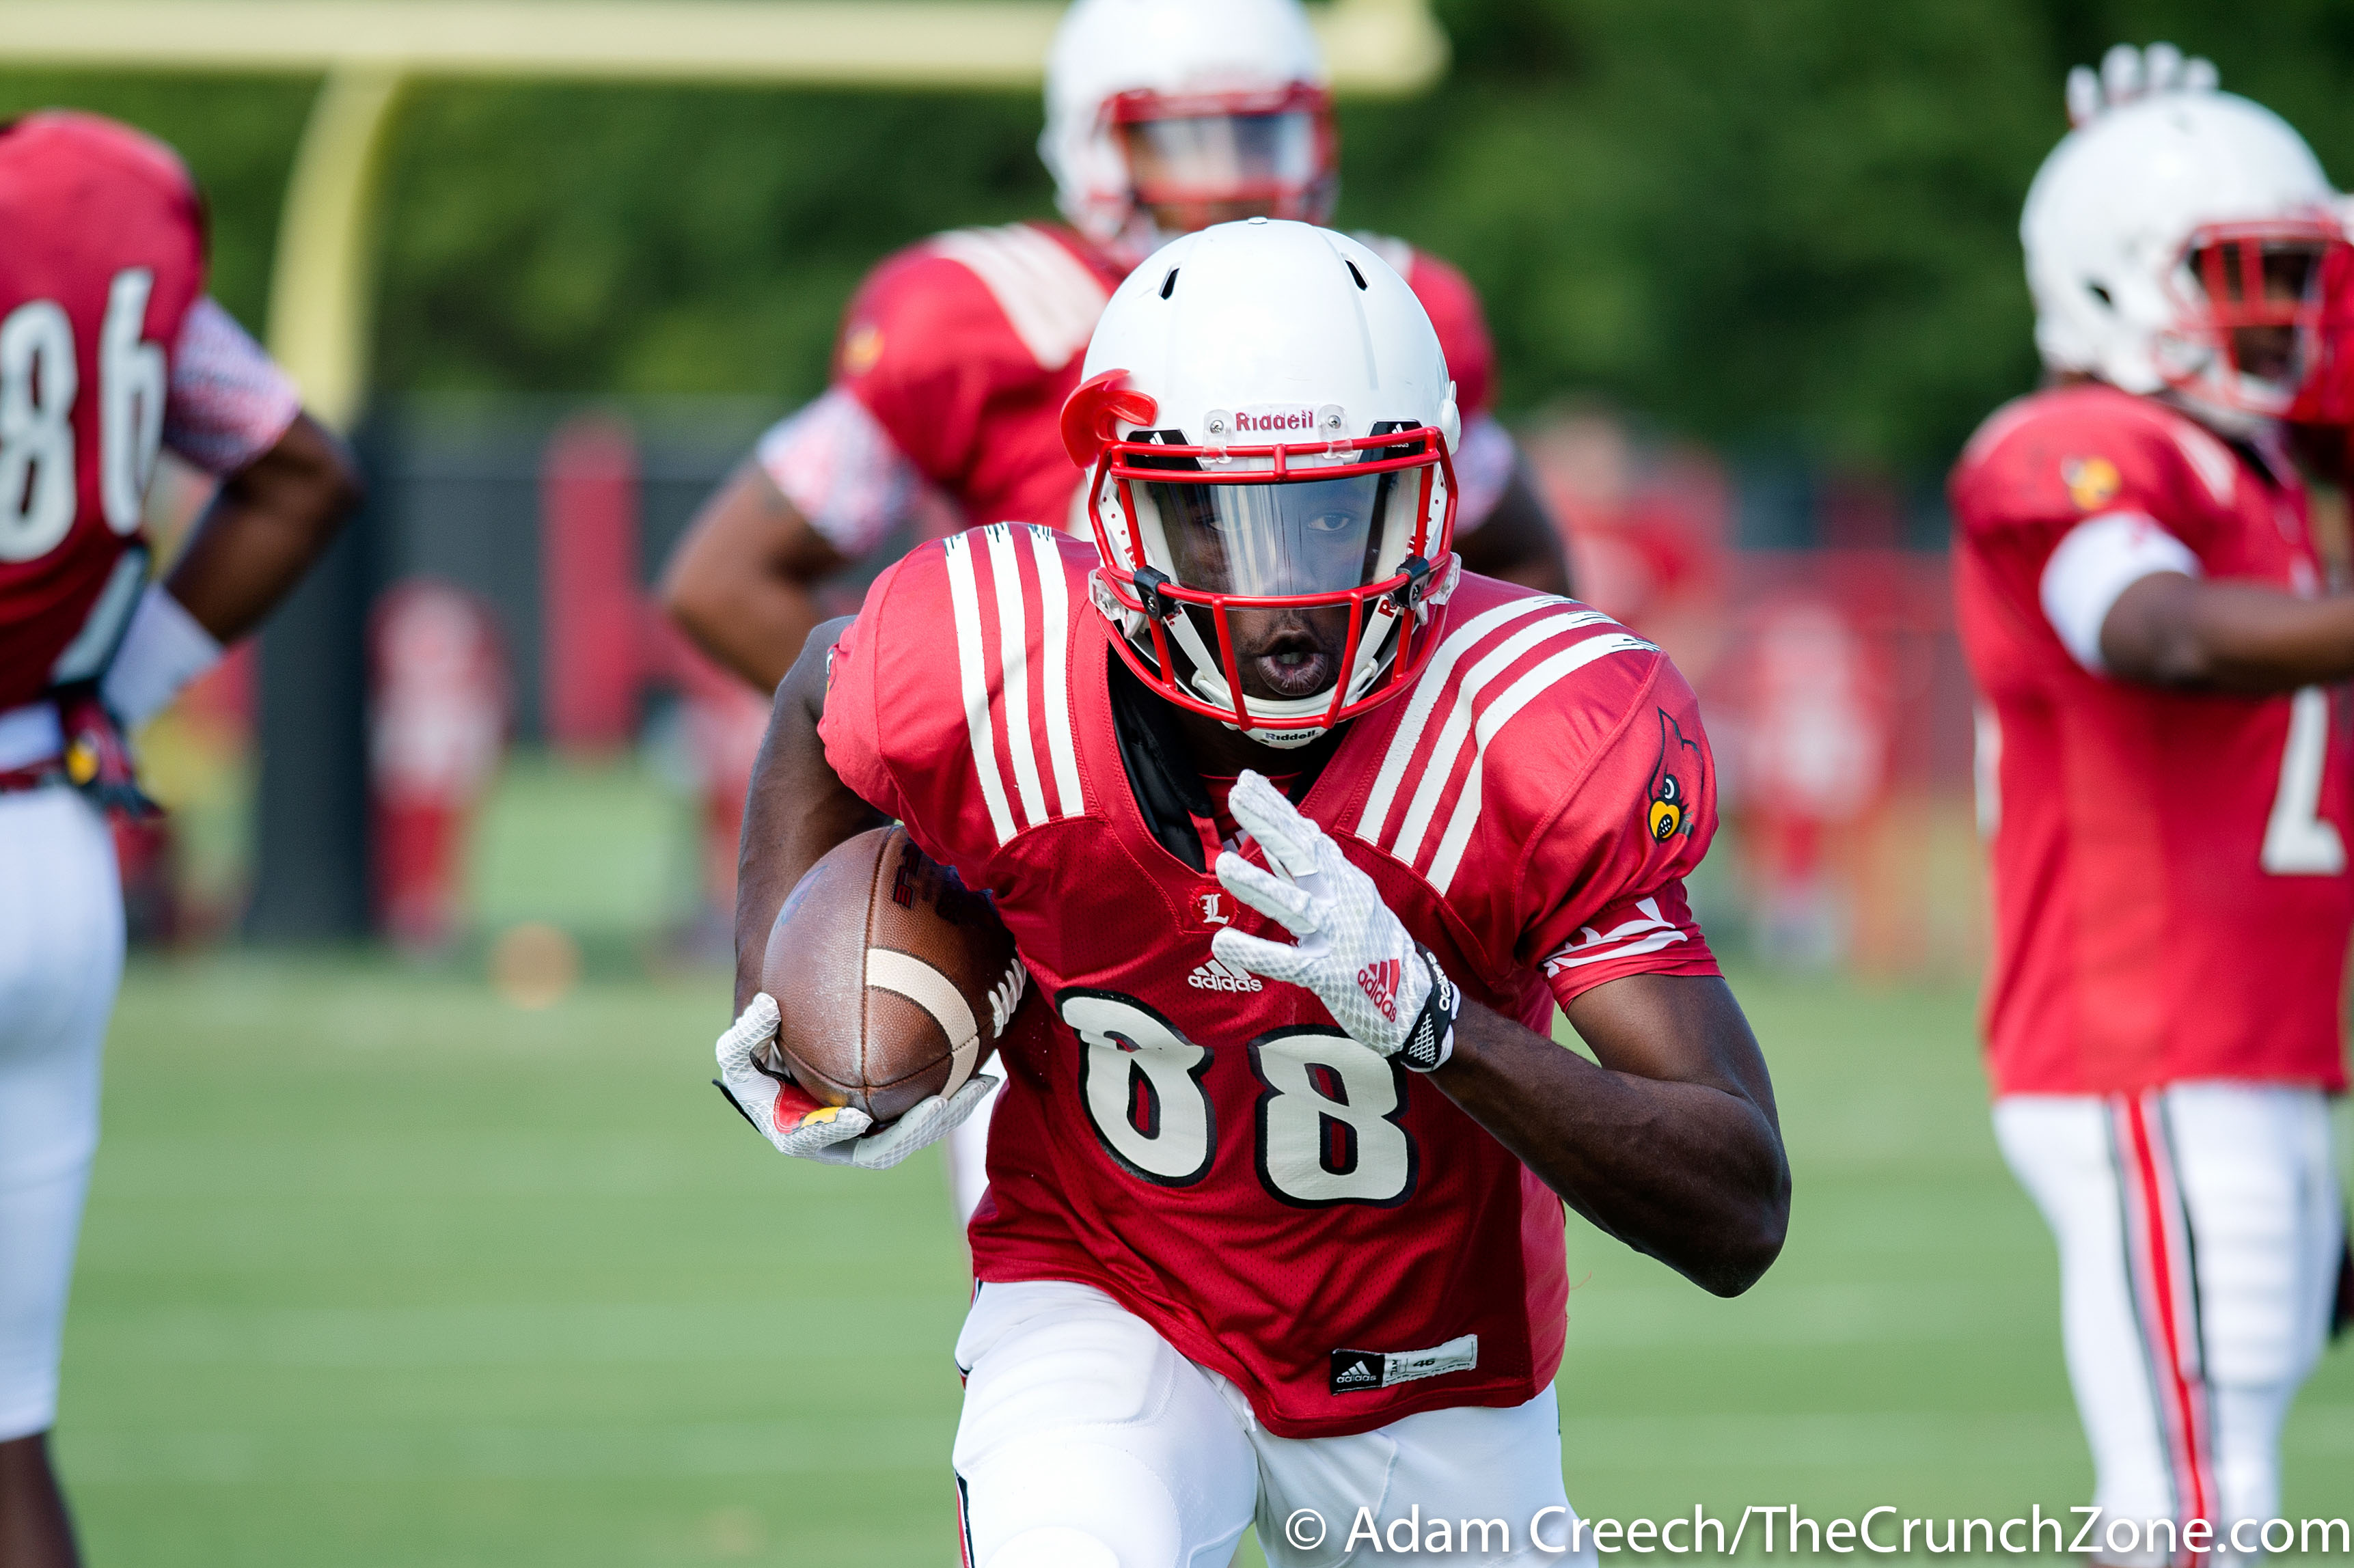 Louisville Cardinals wide receiver Javonte Bagley (88) runs the ball down the field during an open practice on August 11, 2015. Photo by Adam Creech